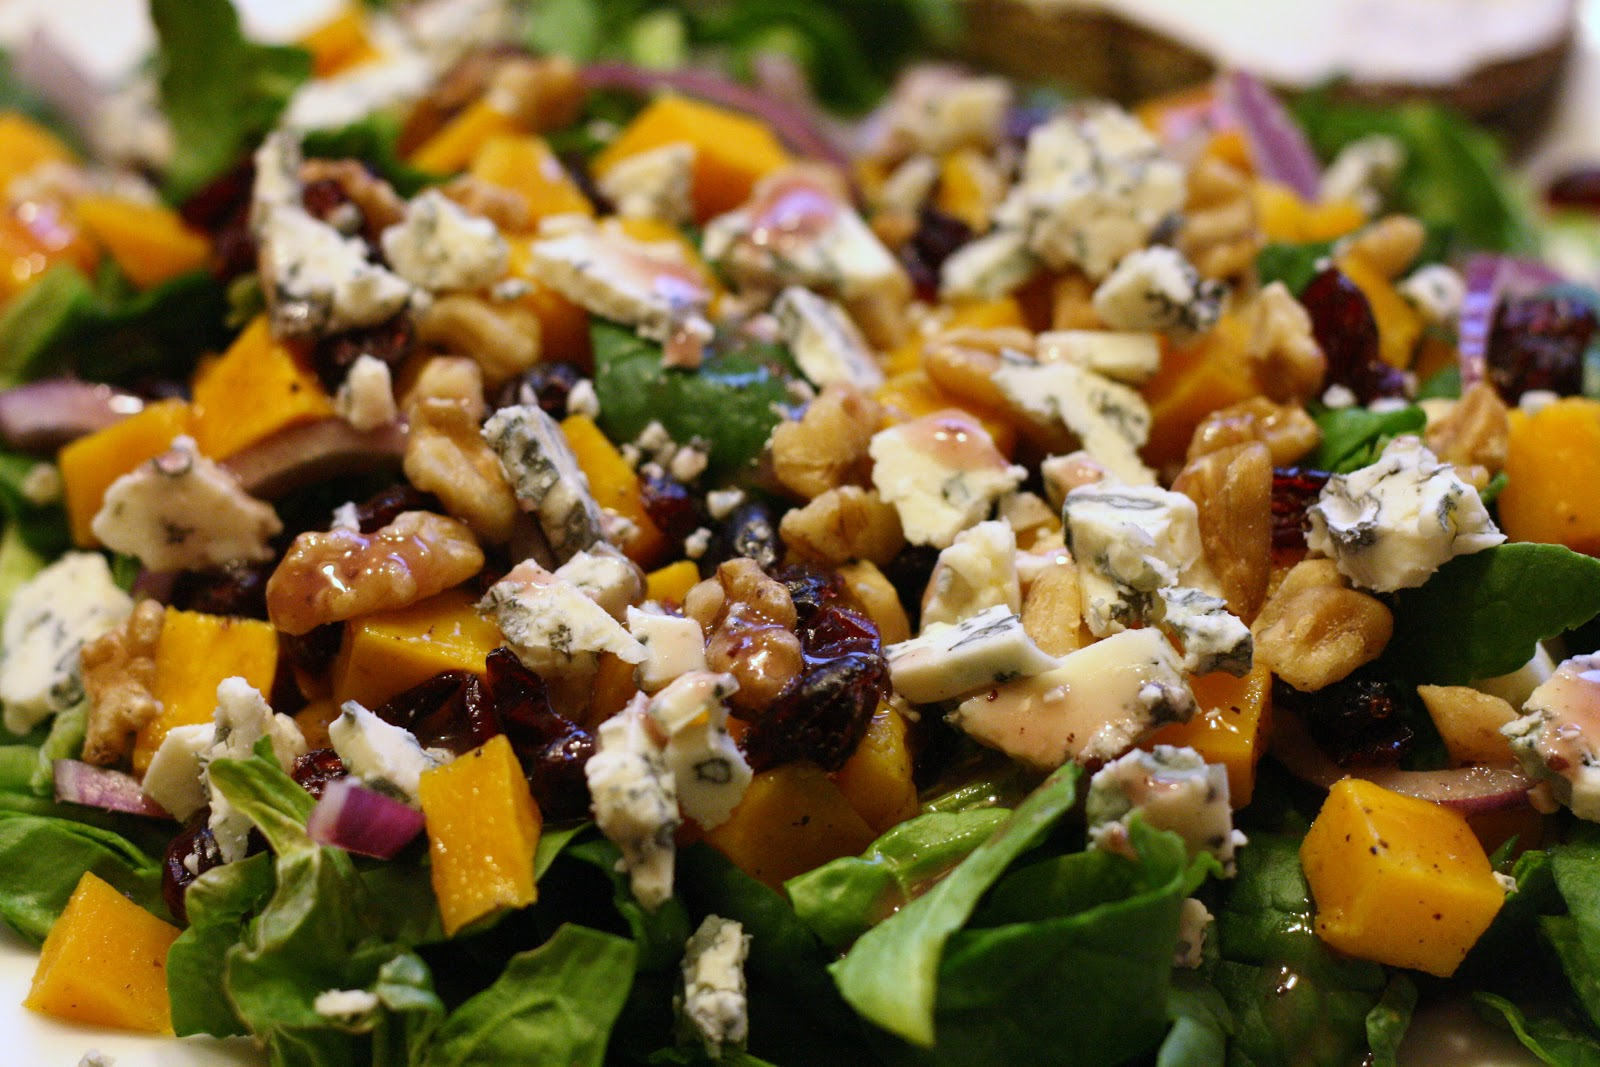 ... Roasted Butternut Squash Salad with Cranberries, Blue Cheese, and